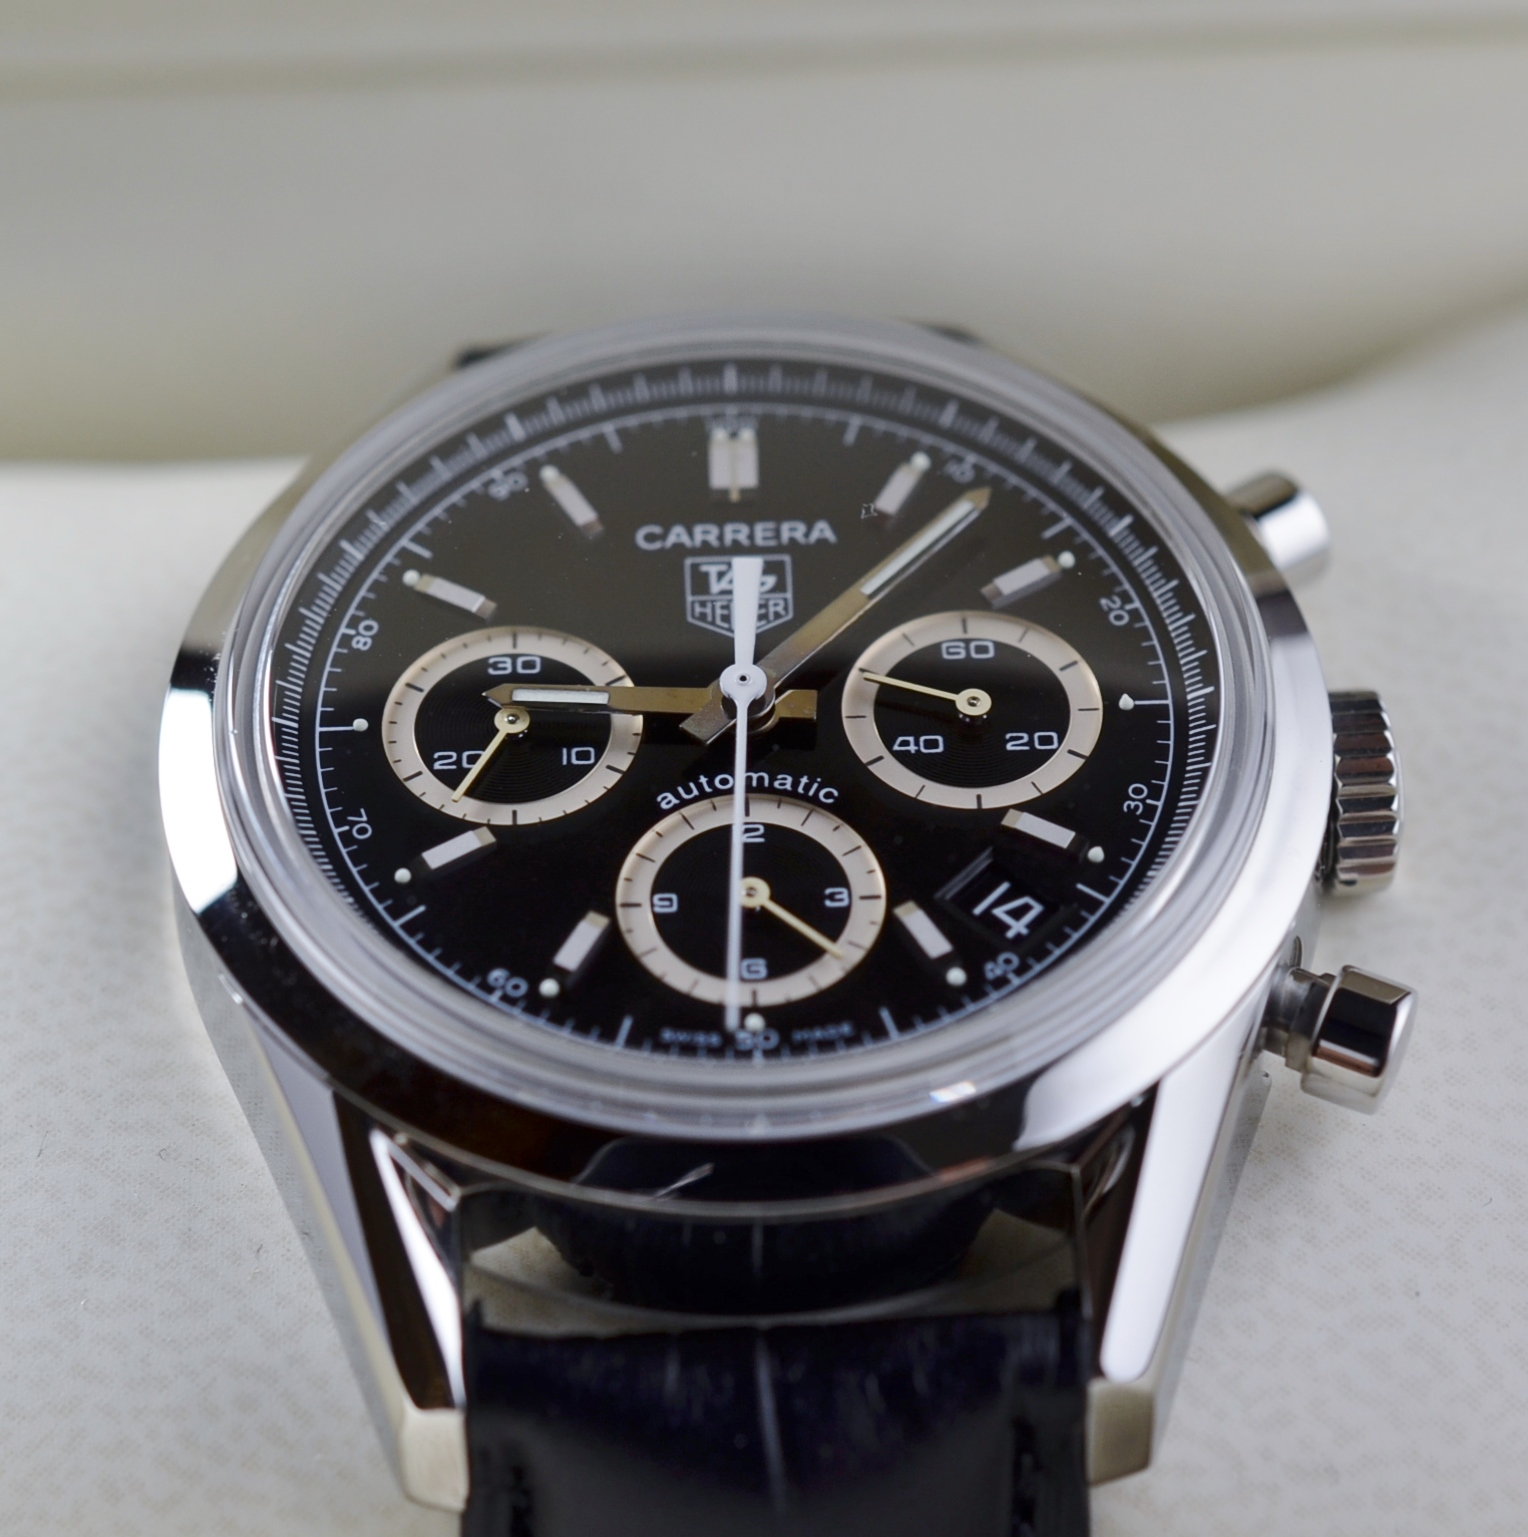 Tag Heuer Carrera Chronograph Watch 38mm Ref Cv2113 0